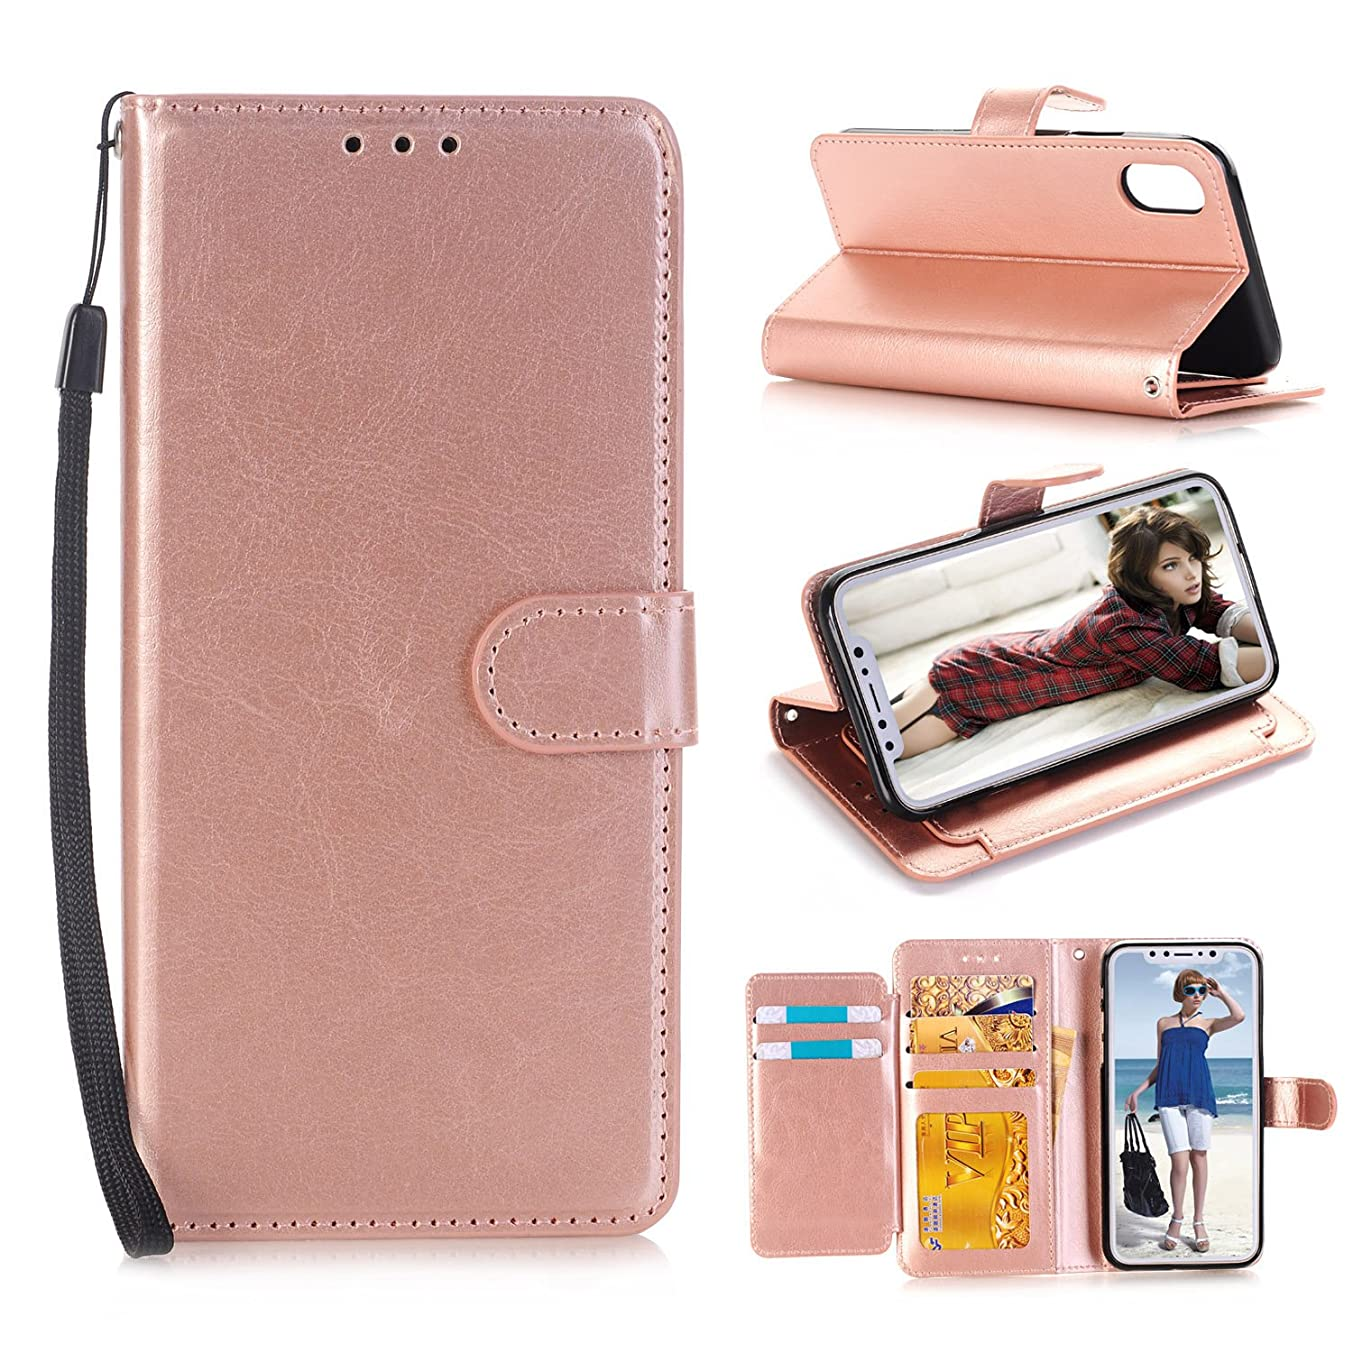 iPhone X Case, Asstar [Stand Feature] Luxury Magnetic PU Leather Wallet Flip with Credit Card Slots Shockproof Scratch-Resistant Protective Case Cover for Apple iPhone X/Xs /10 5.8 inch (Rose Gold)